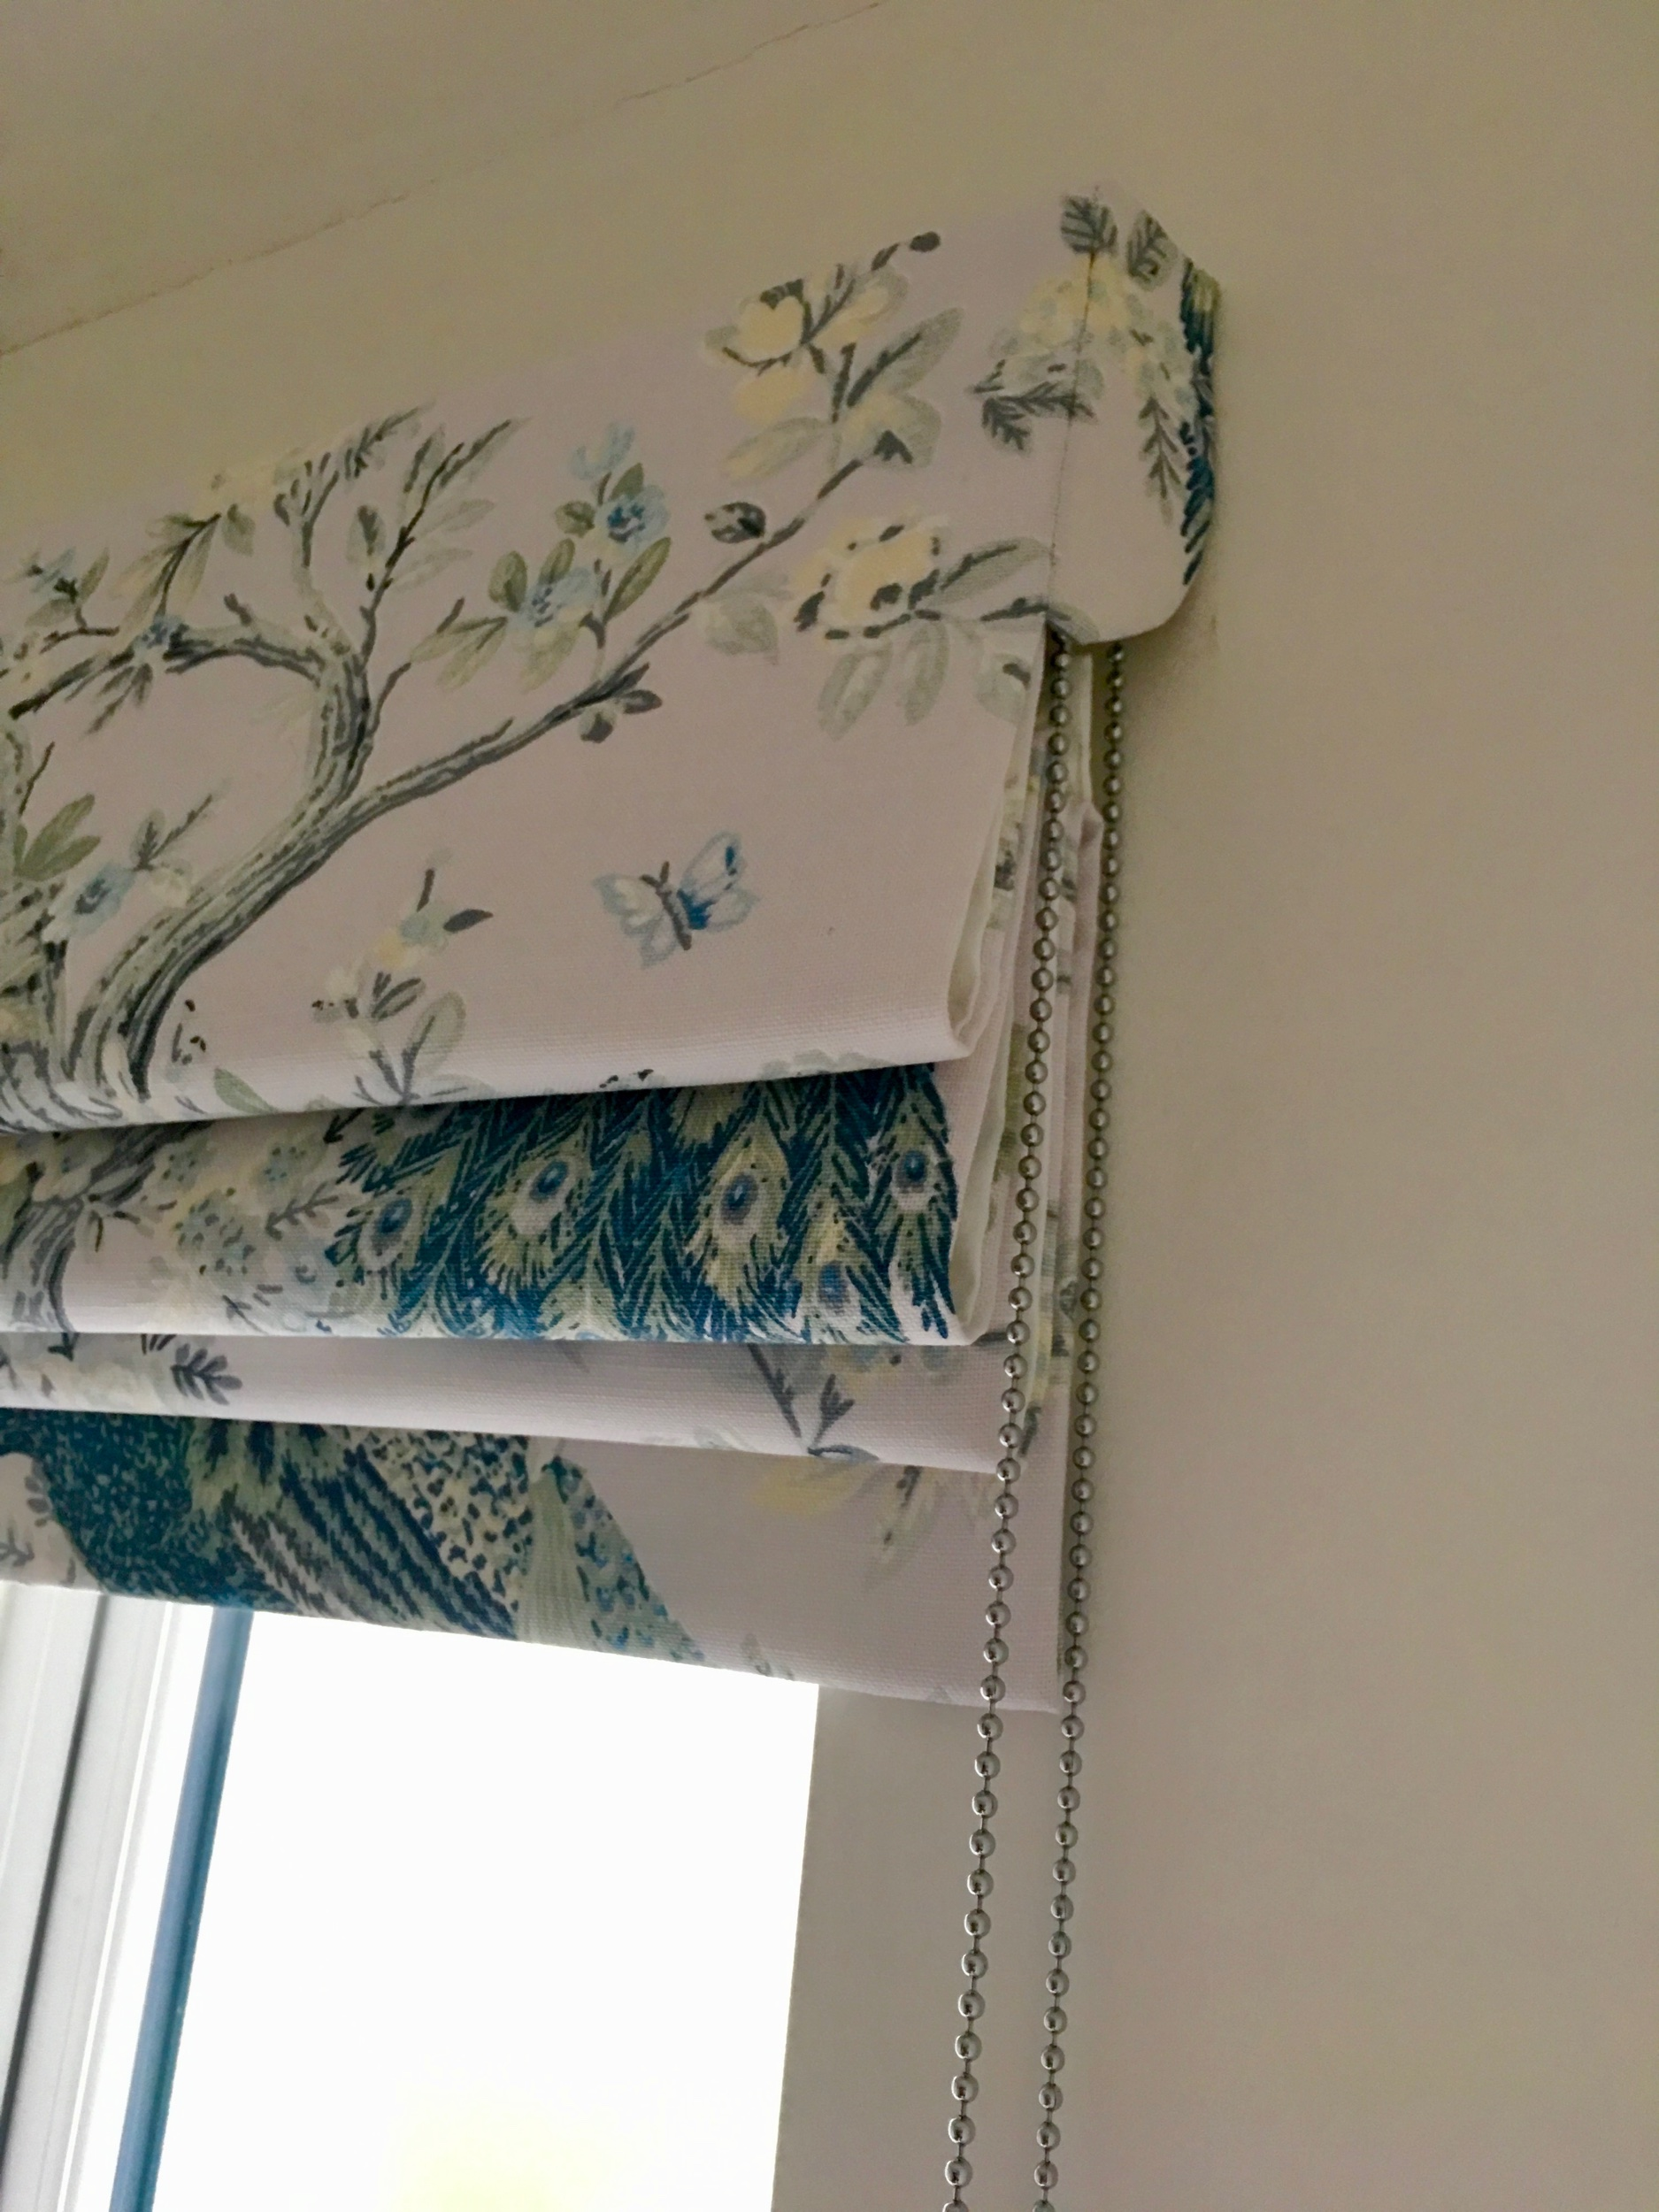 Carefully pattern matched side returns give a streamlined look to the Roman blind